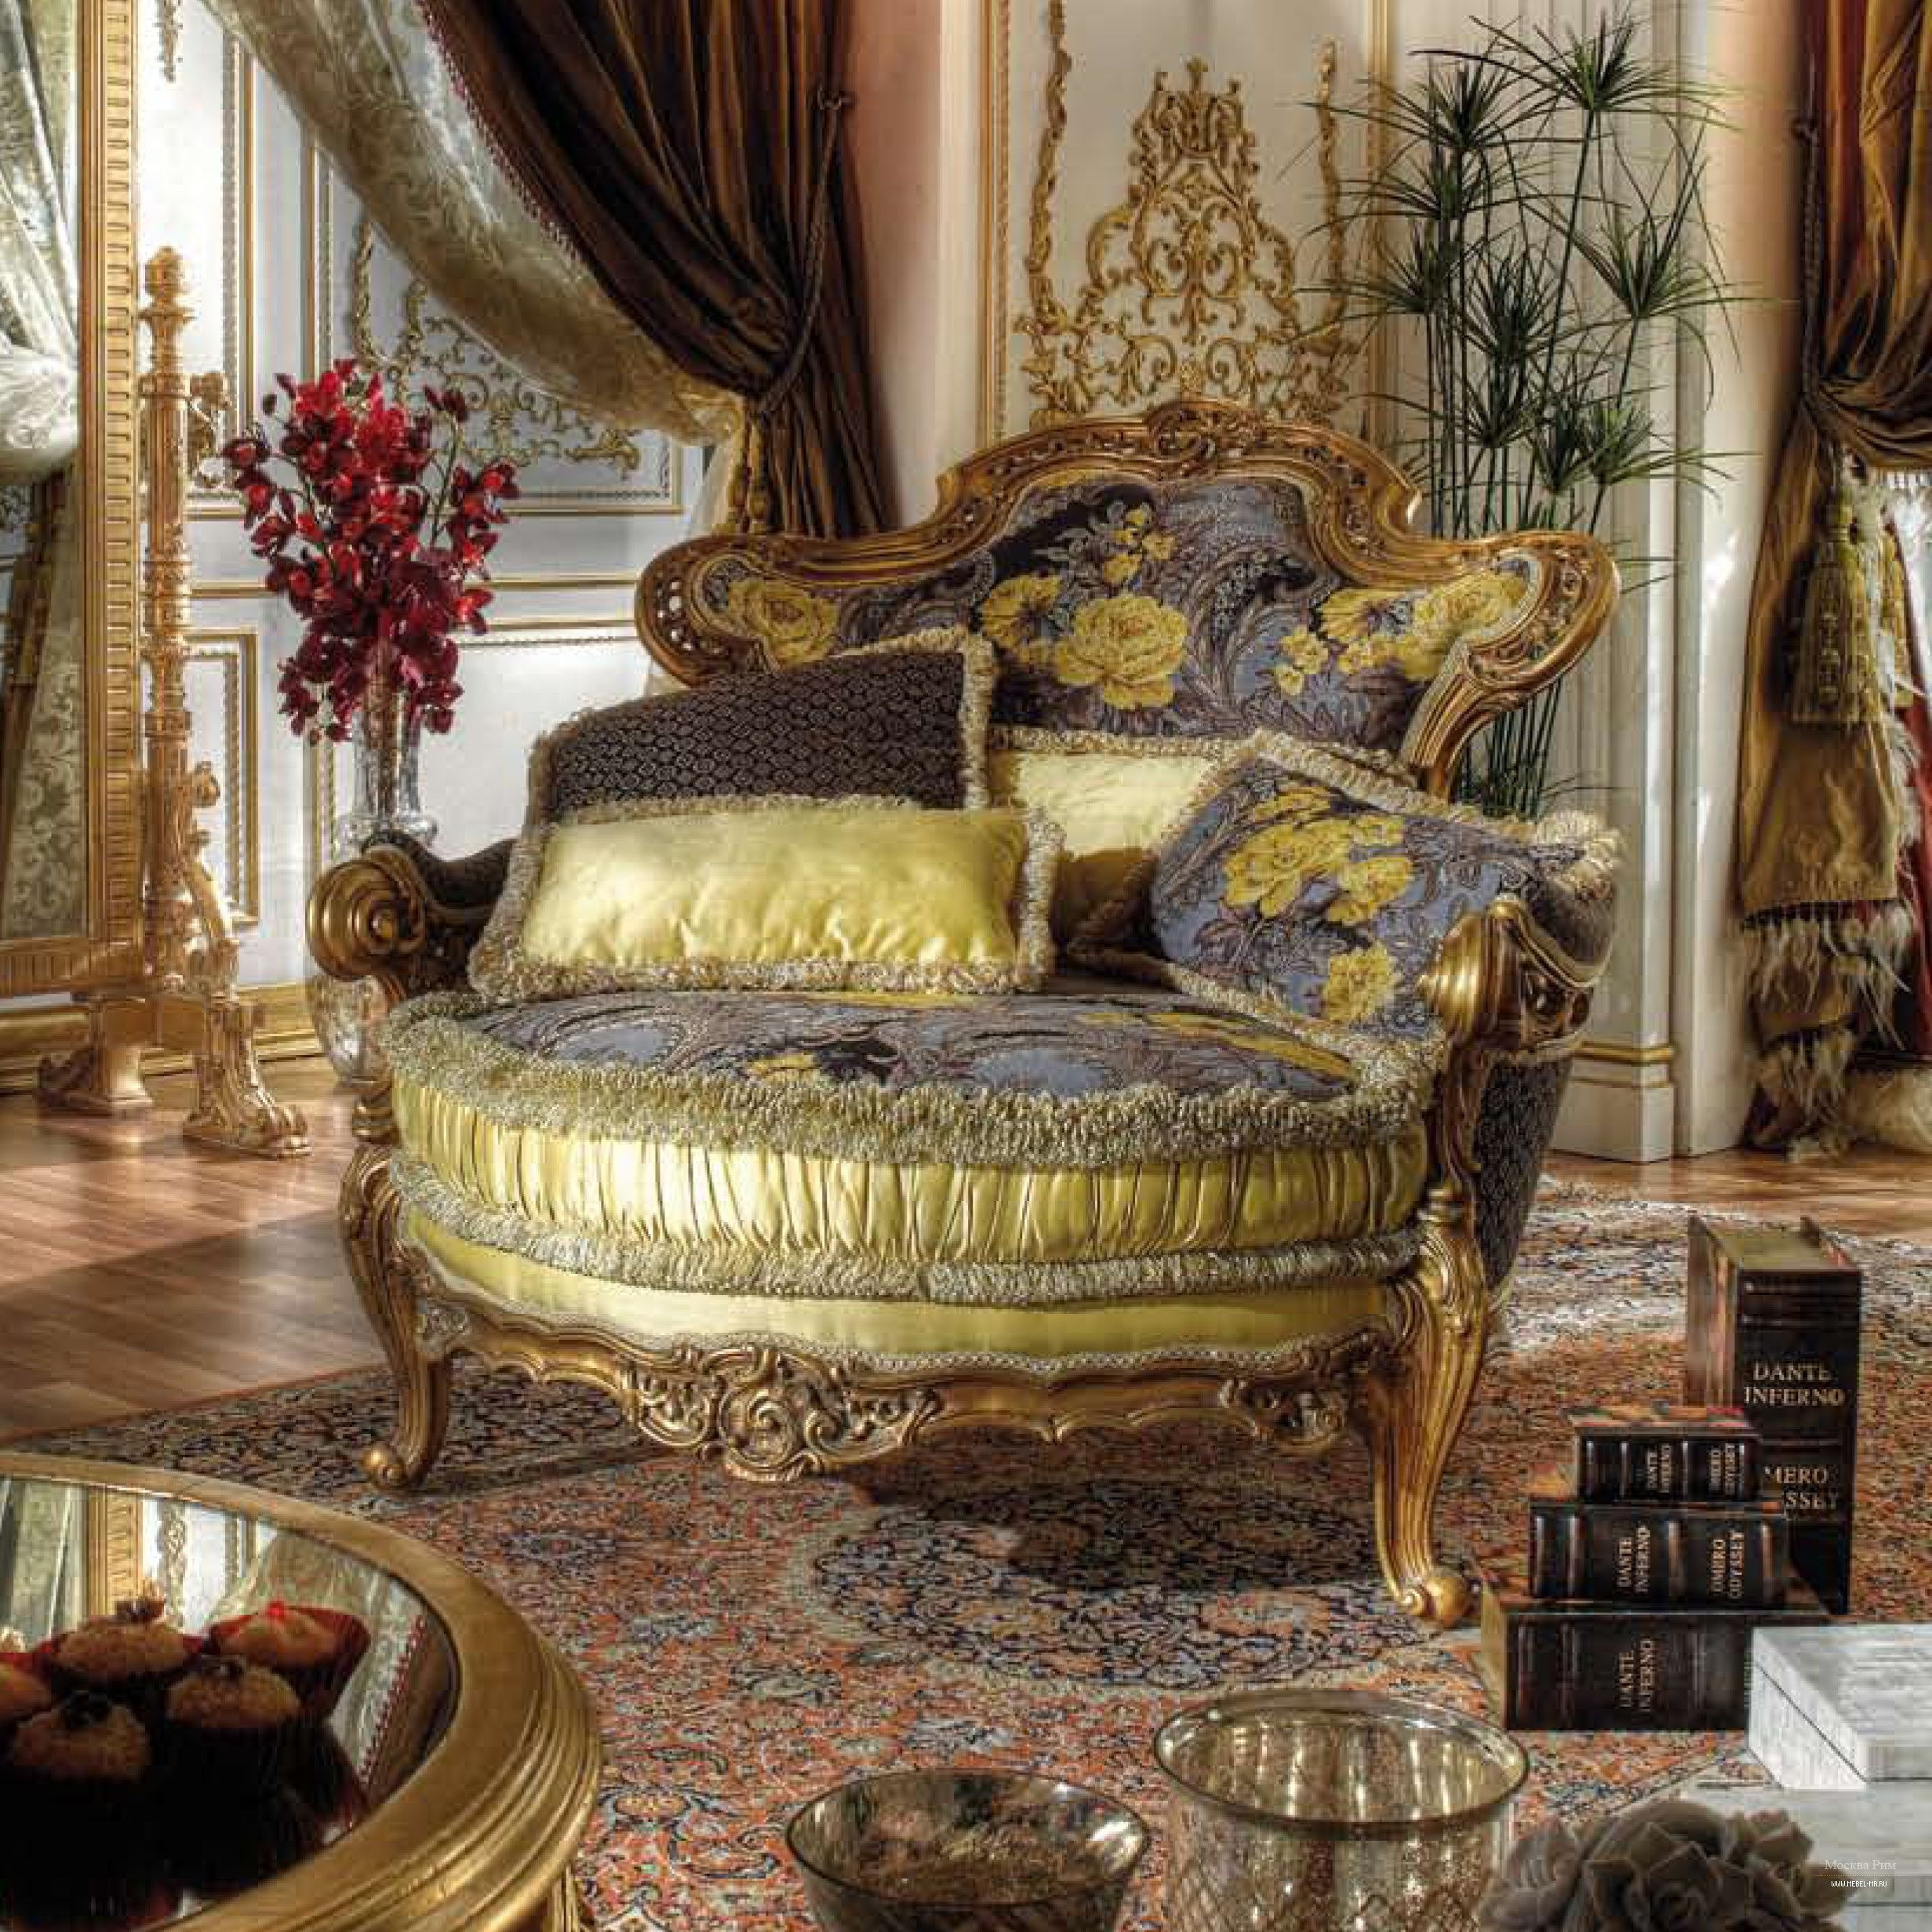 Luxury armchair by Asnaghi Interiors S.r.l., Italy